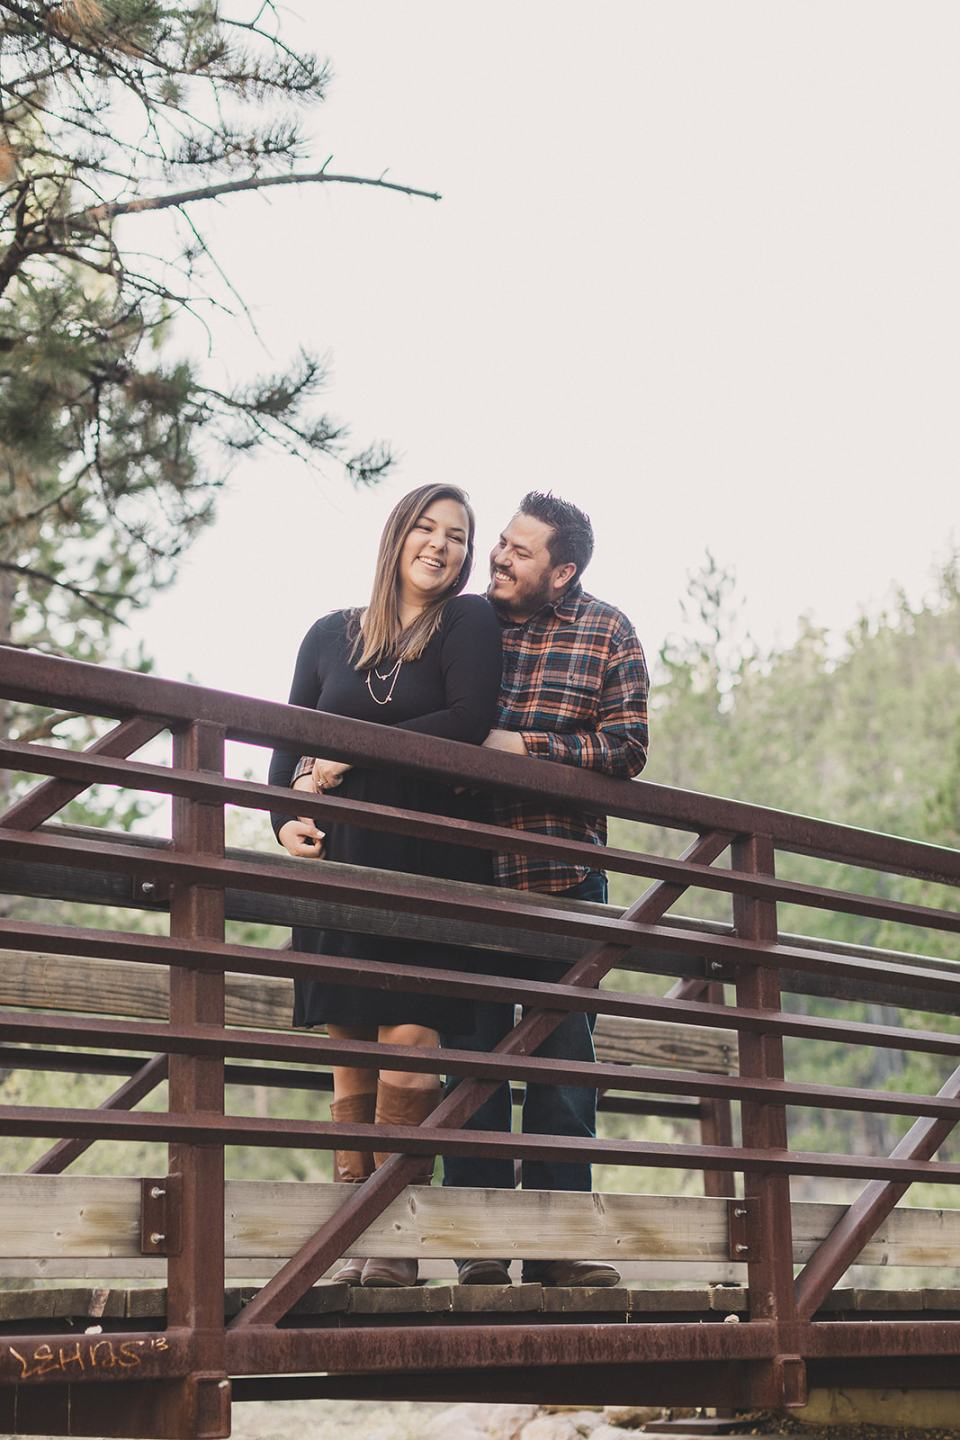 mom and dad pose on bridge during Nevada family photos